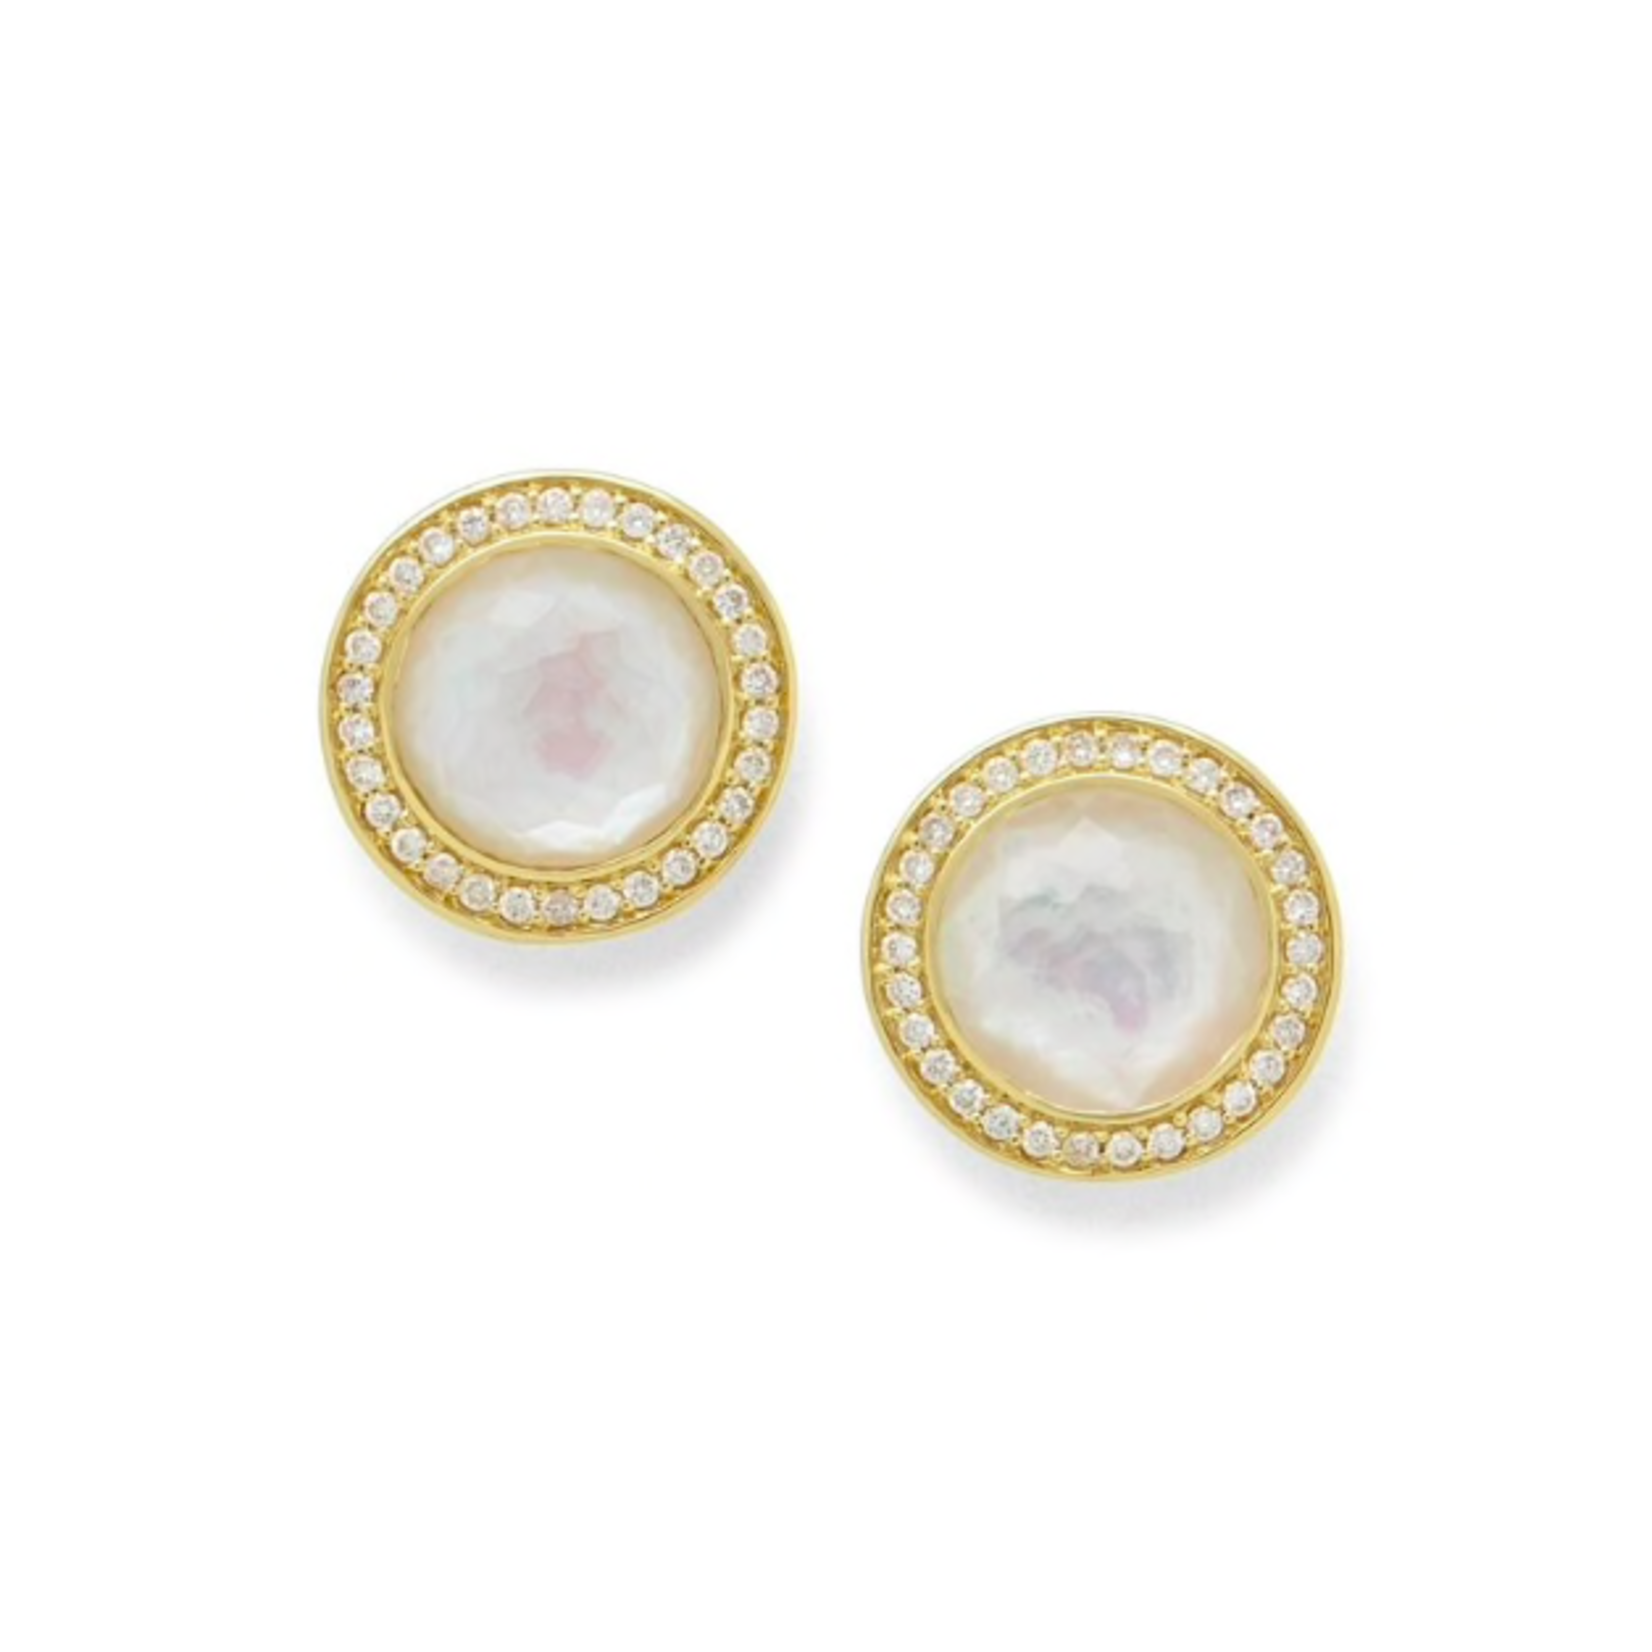 18KY Gold Mother of Pearl & Diamond 0.64ctw Studs by IPPOLITA